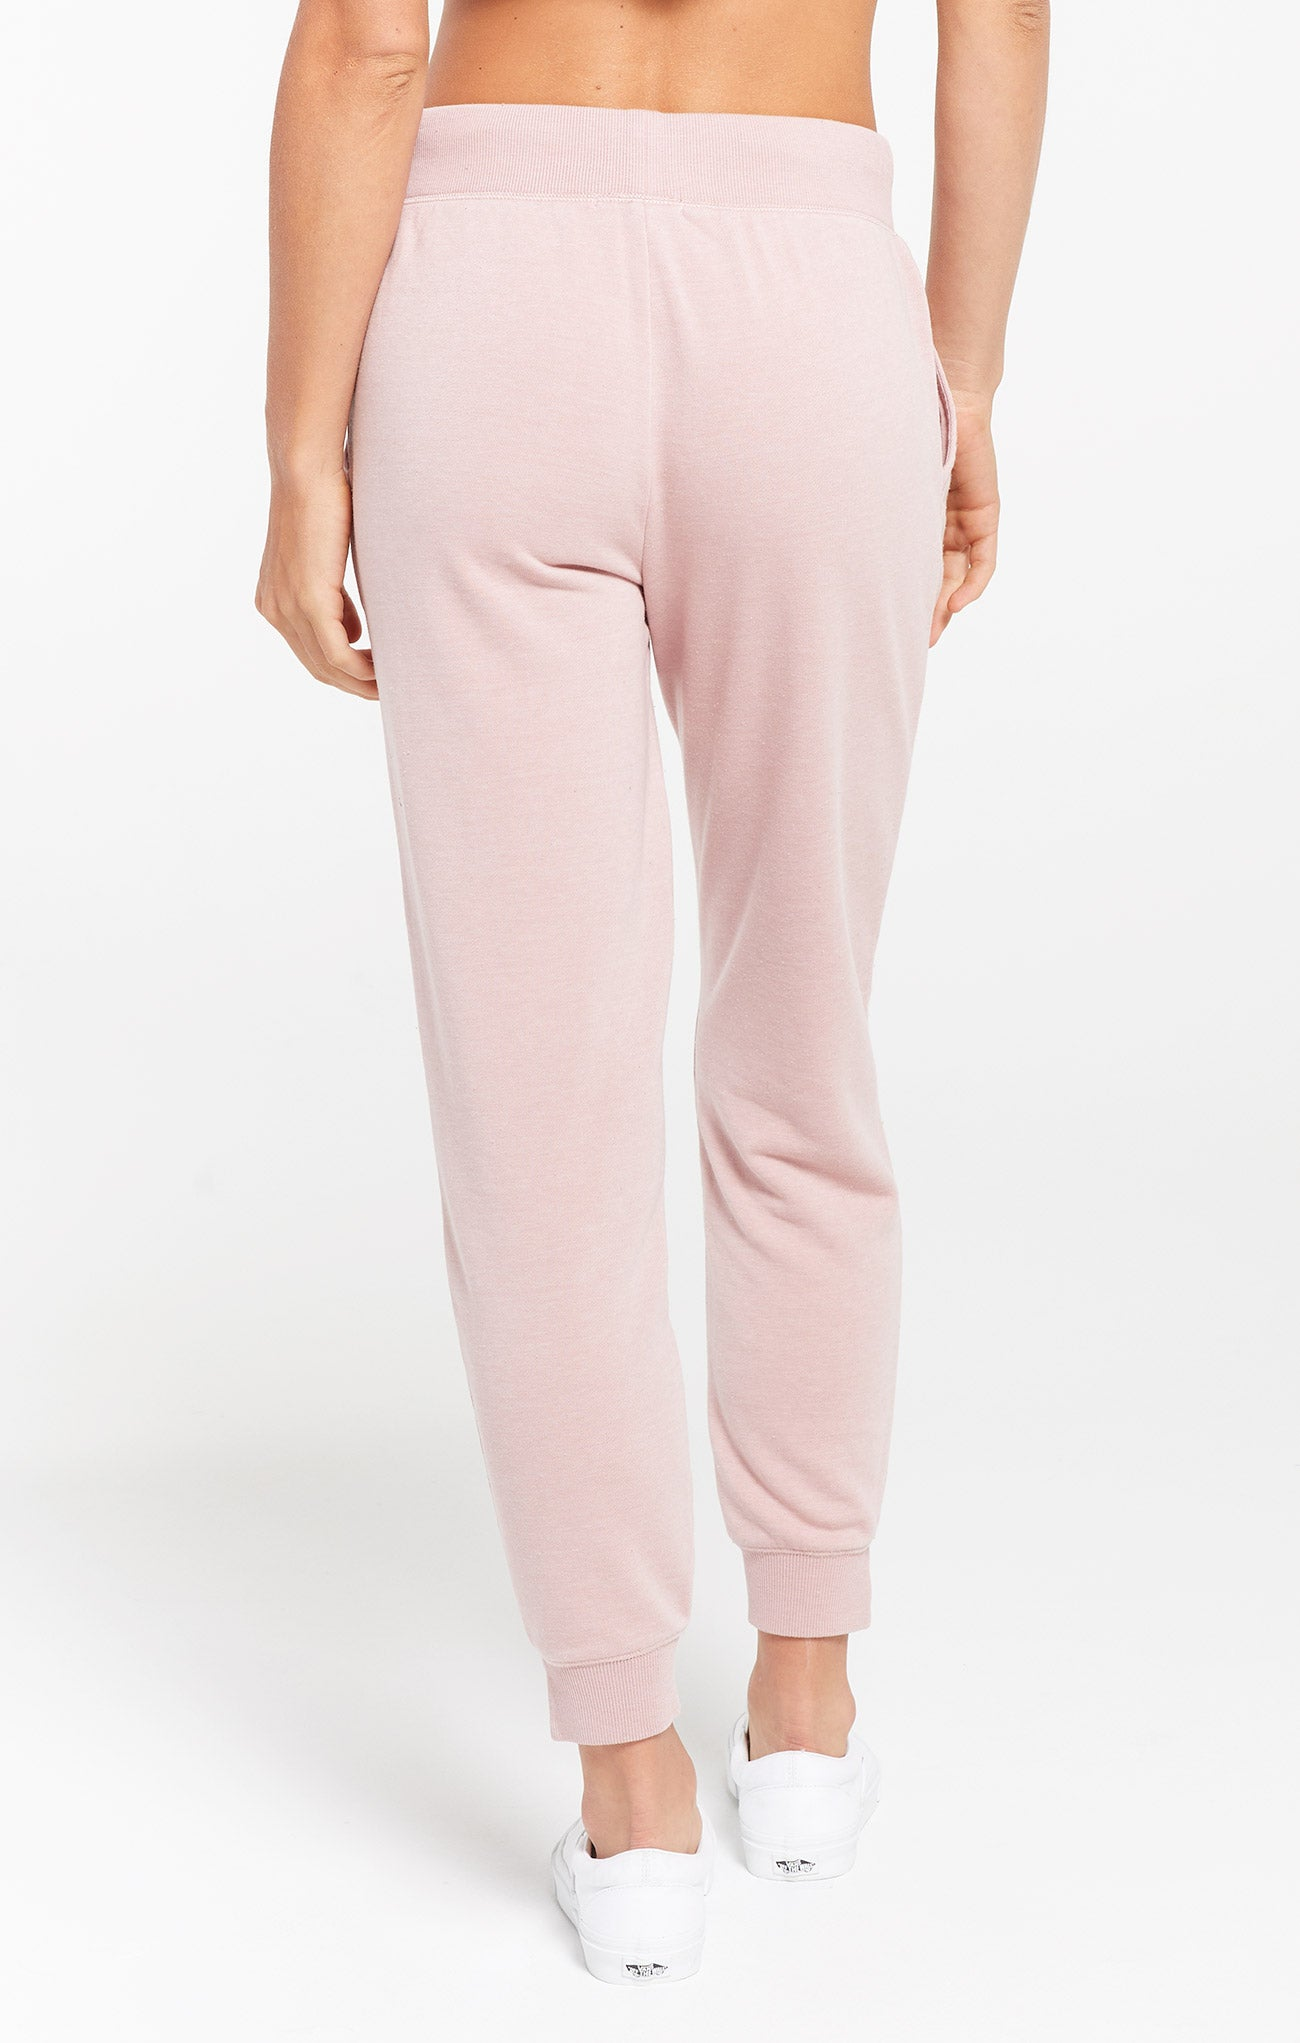 Pants Cypress Loop Terry Jogger Pink Blossom